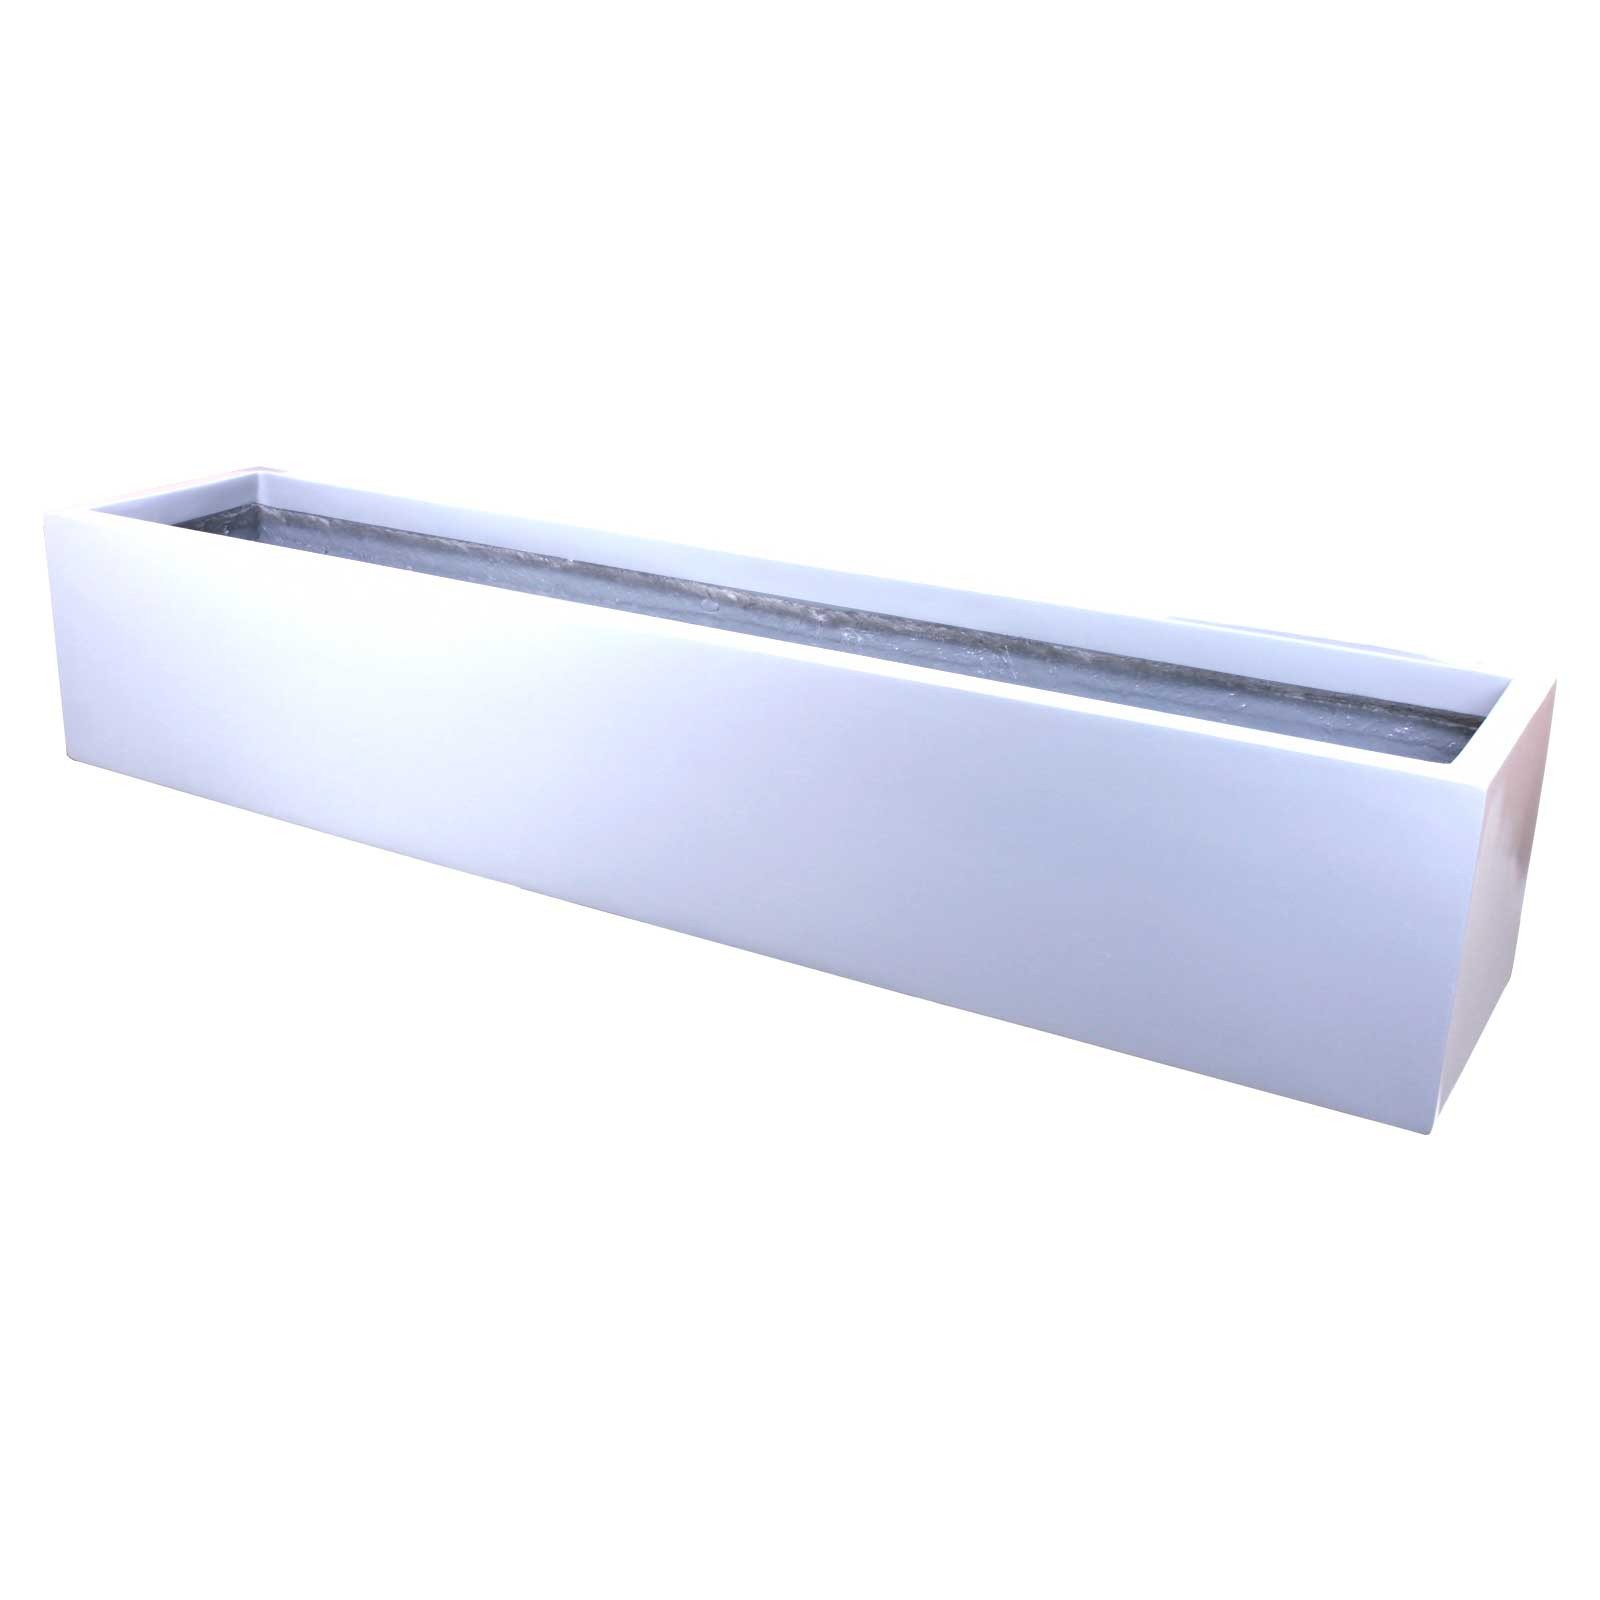 Long Planter Box - Fiberglass - 65'L x 14'W x 12'H